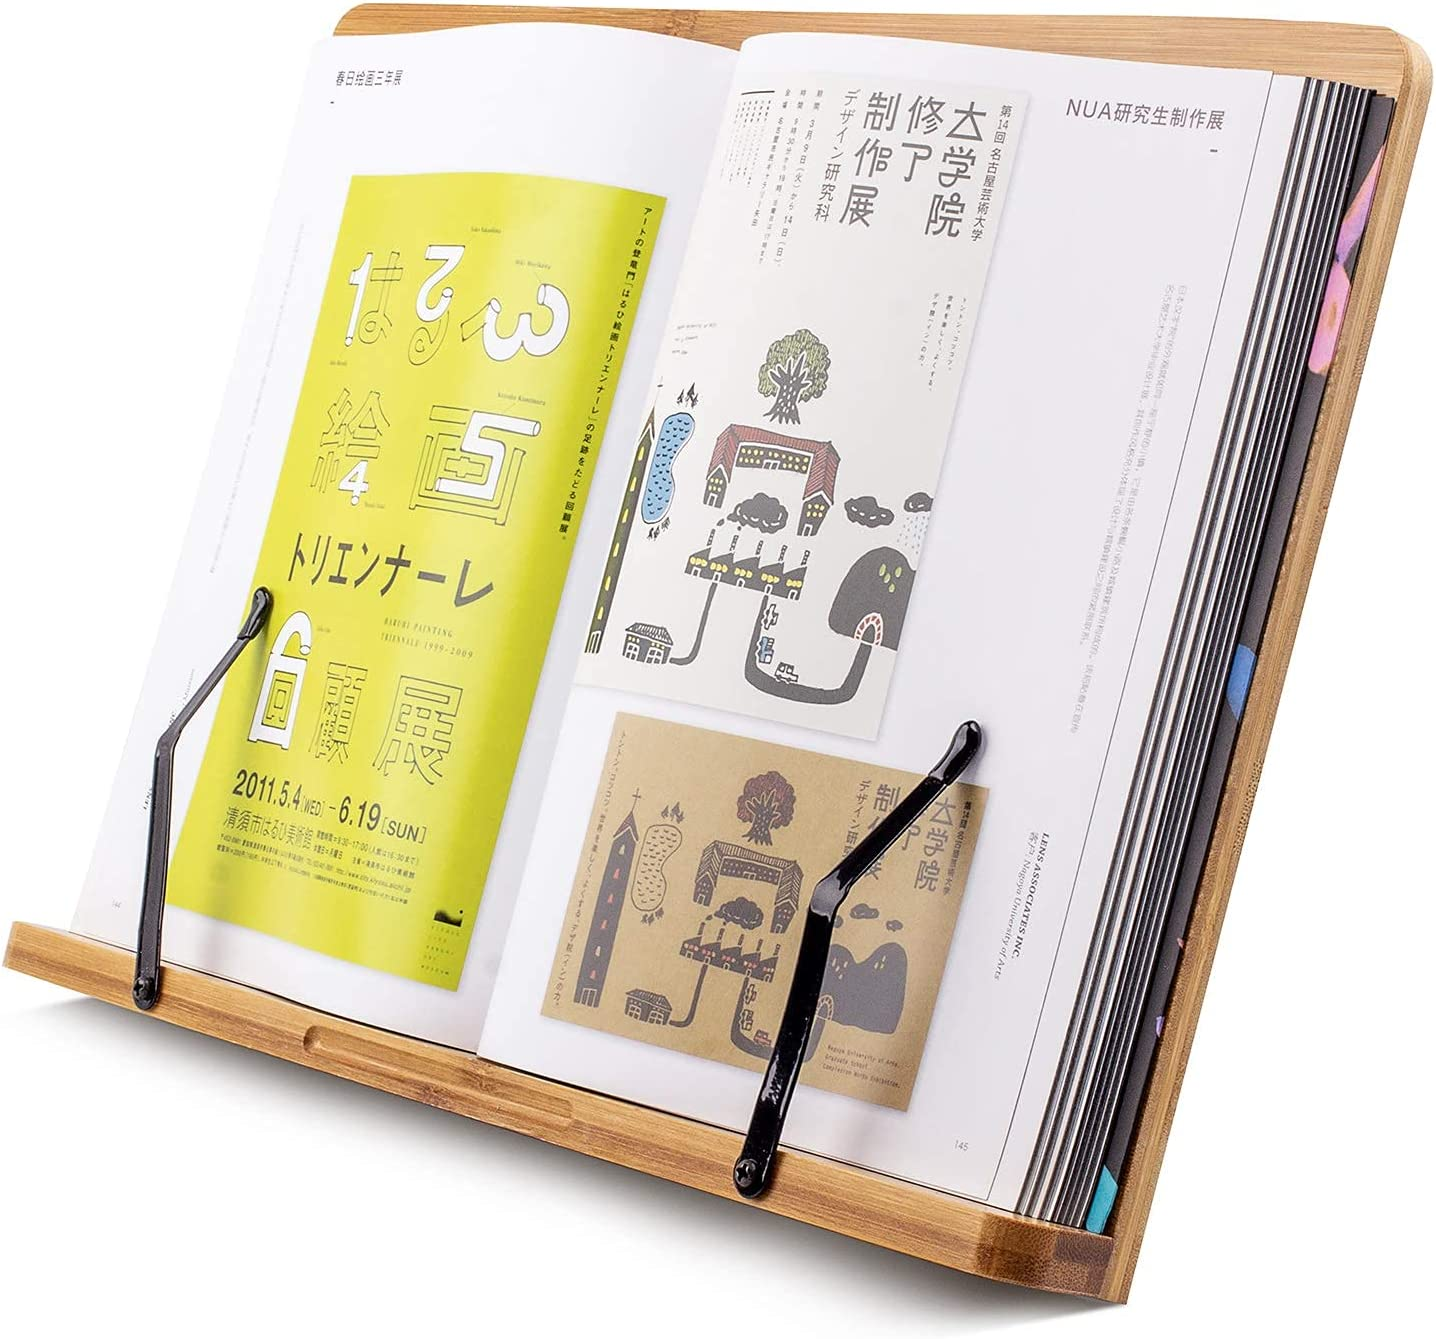 Large 15 Inch XL Bamboo Book Stand For Textbooks reading hands free,cookbook stand,Laptop,iPad,tablet PC,Music Book,With Adjustable Motherboard Angle Ergonomic Paper Holder Reading In Bed Display Desk